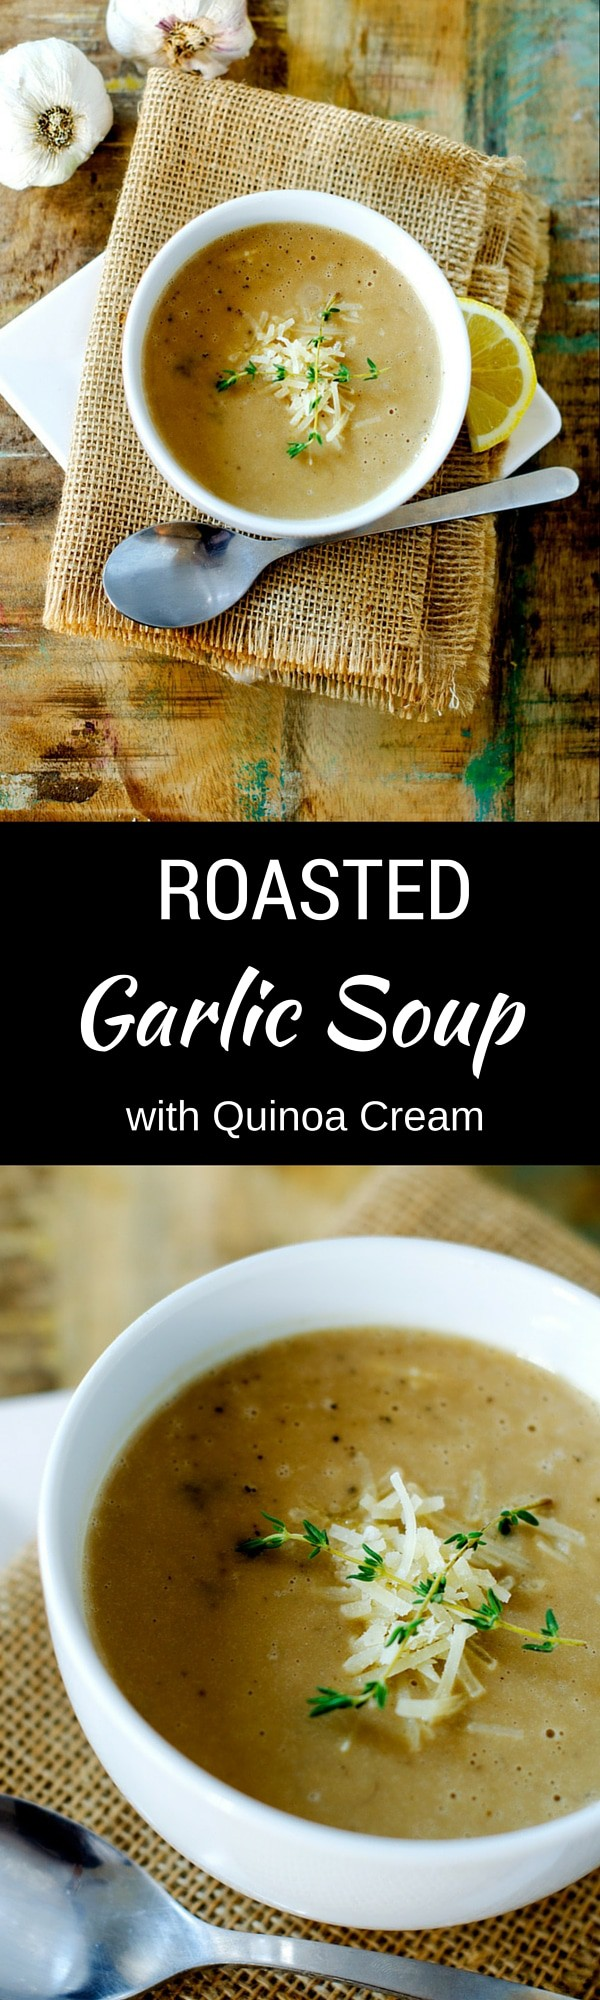 Roasted Garlic Soup with Quinoa Cream